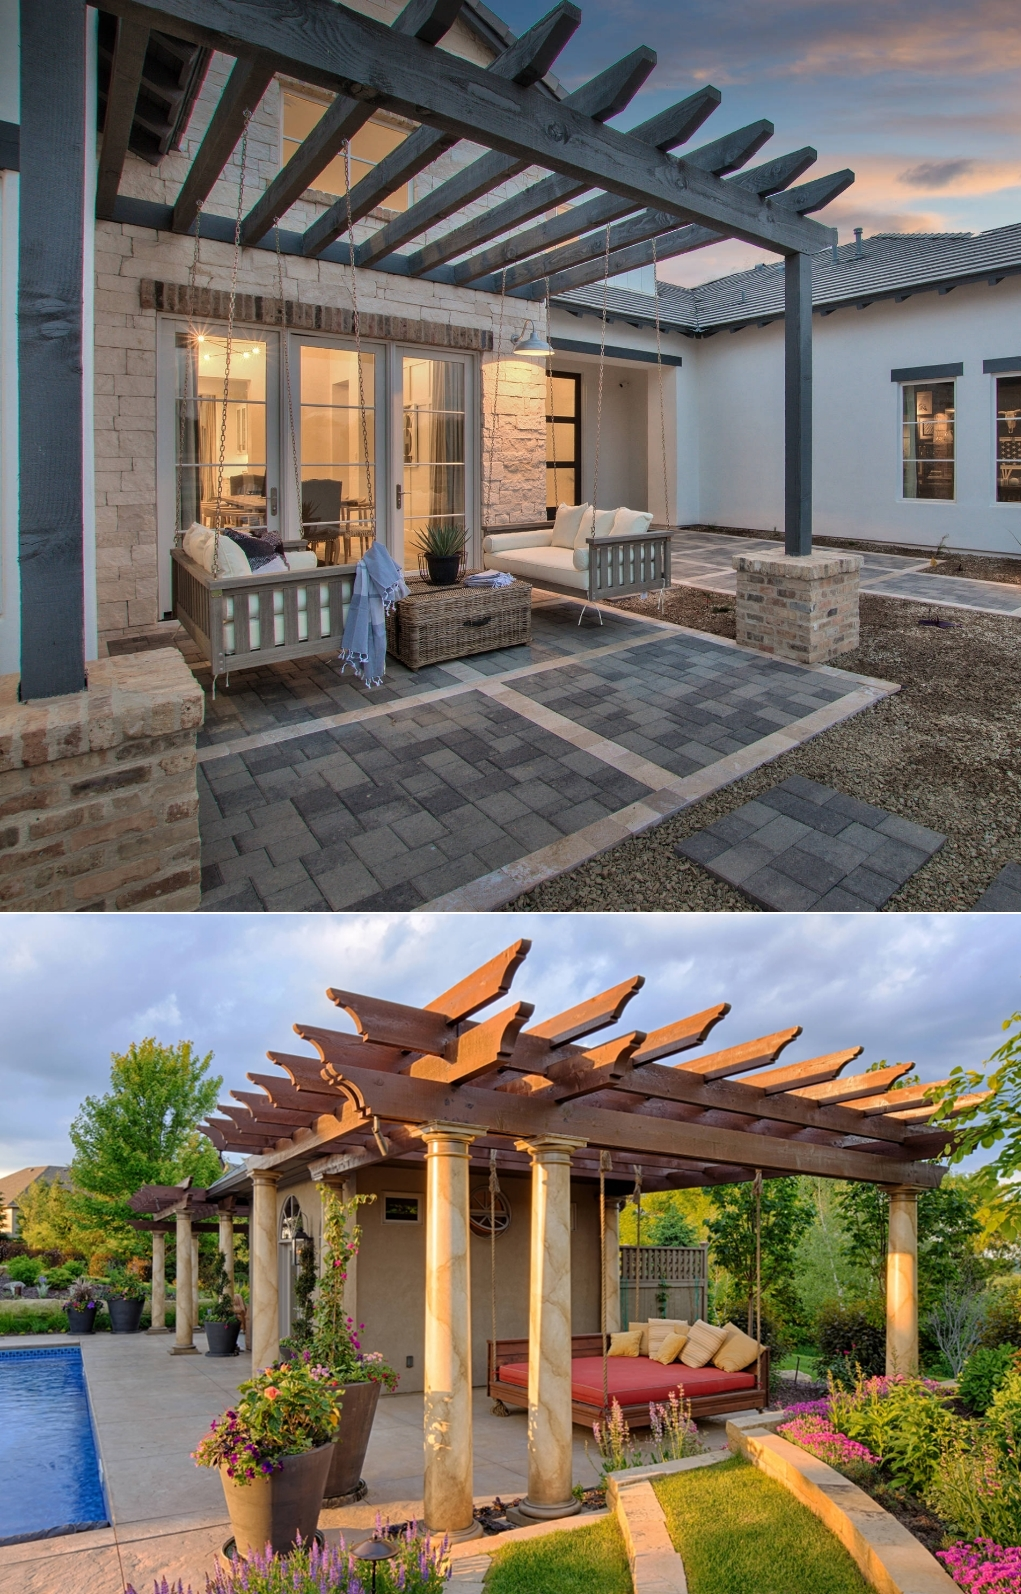 How to Decorate with a Pergola